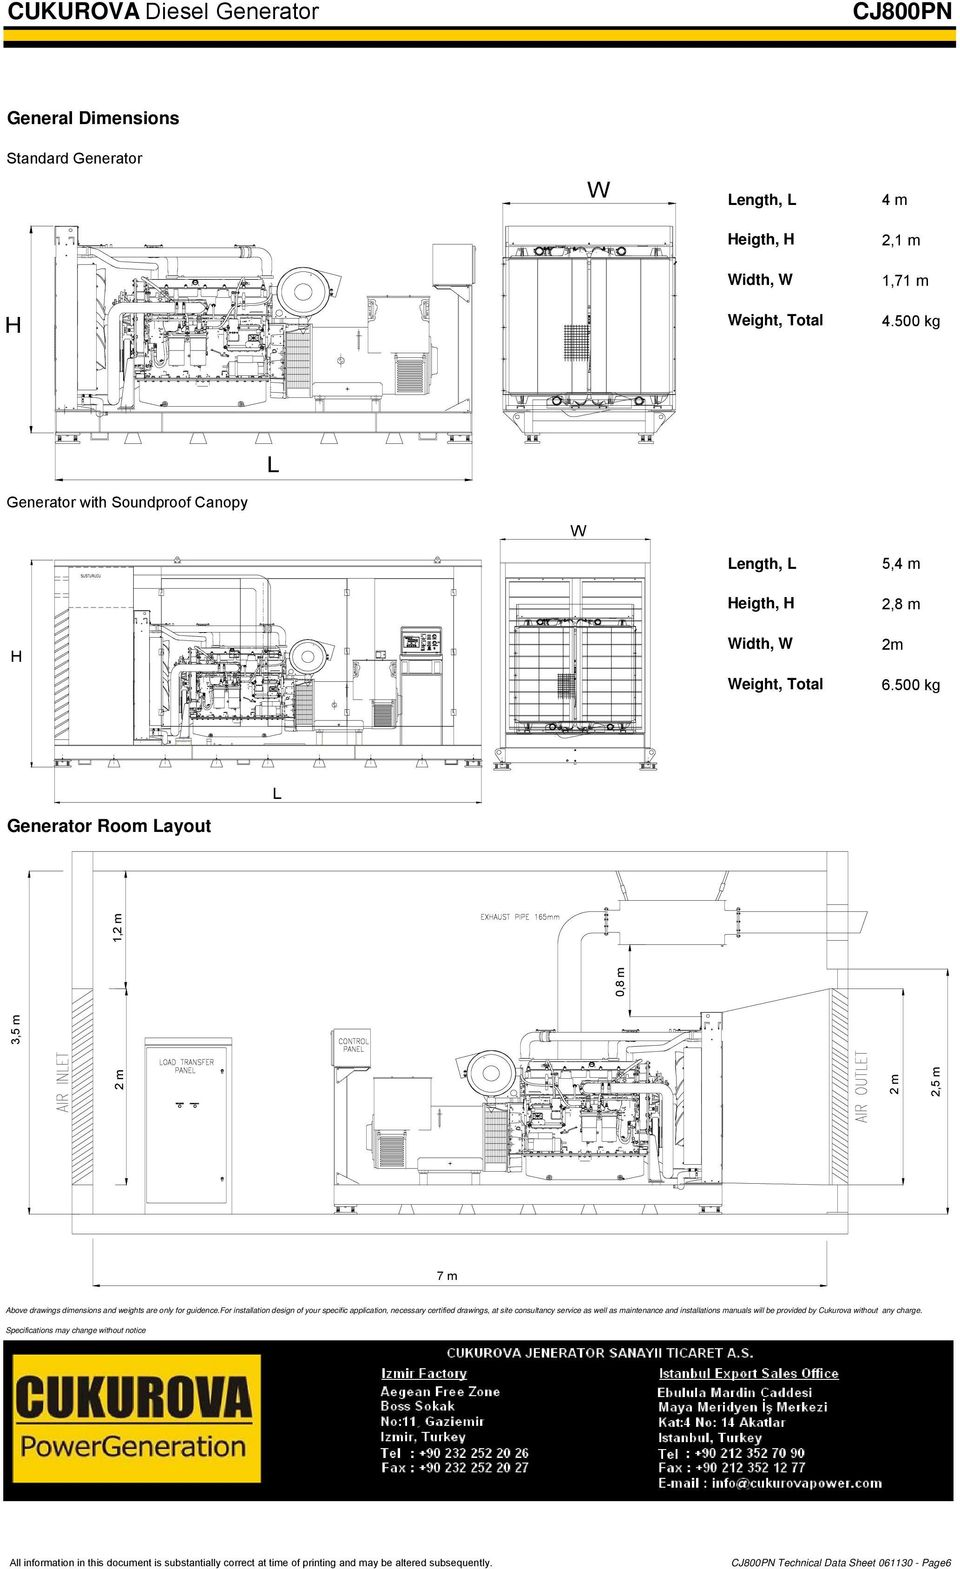 500 kg L Generator Room Layout 3,5 m 2 m 1,2 m 0,8 m 2 m 2,5 m 7 m Above drawings dimensions and weights are only for guidence.